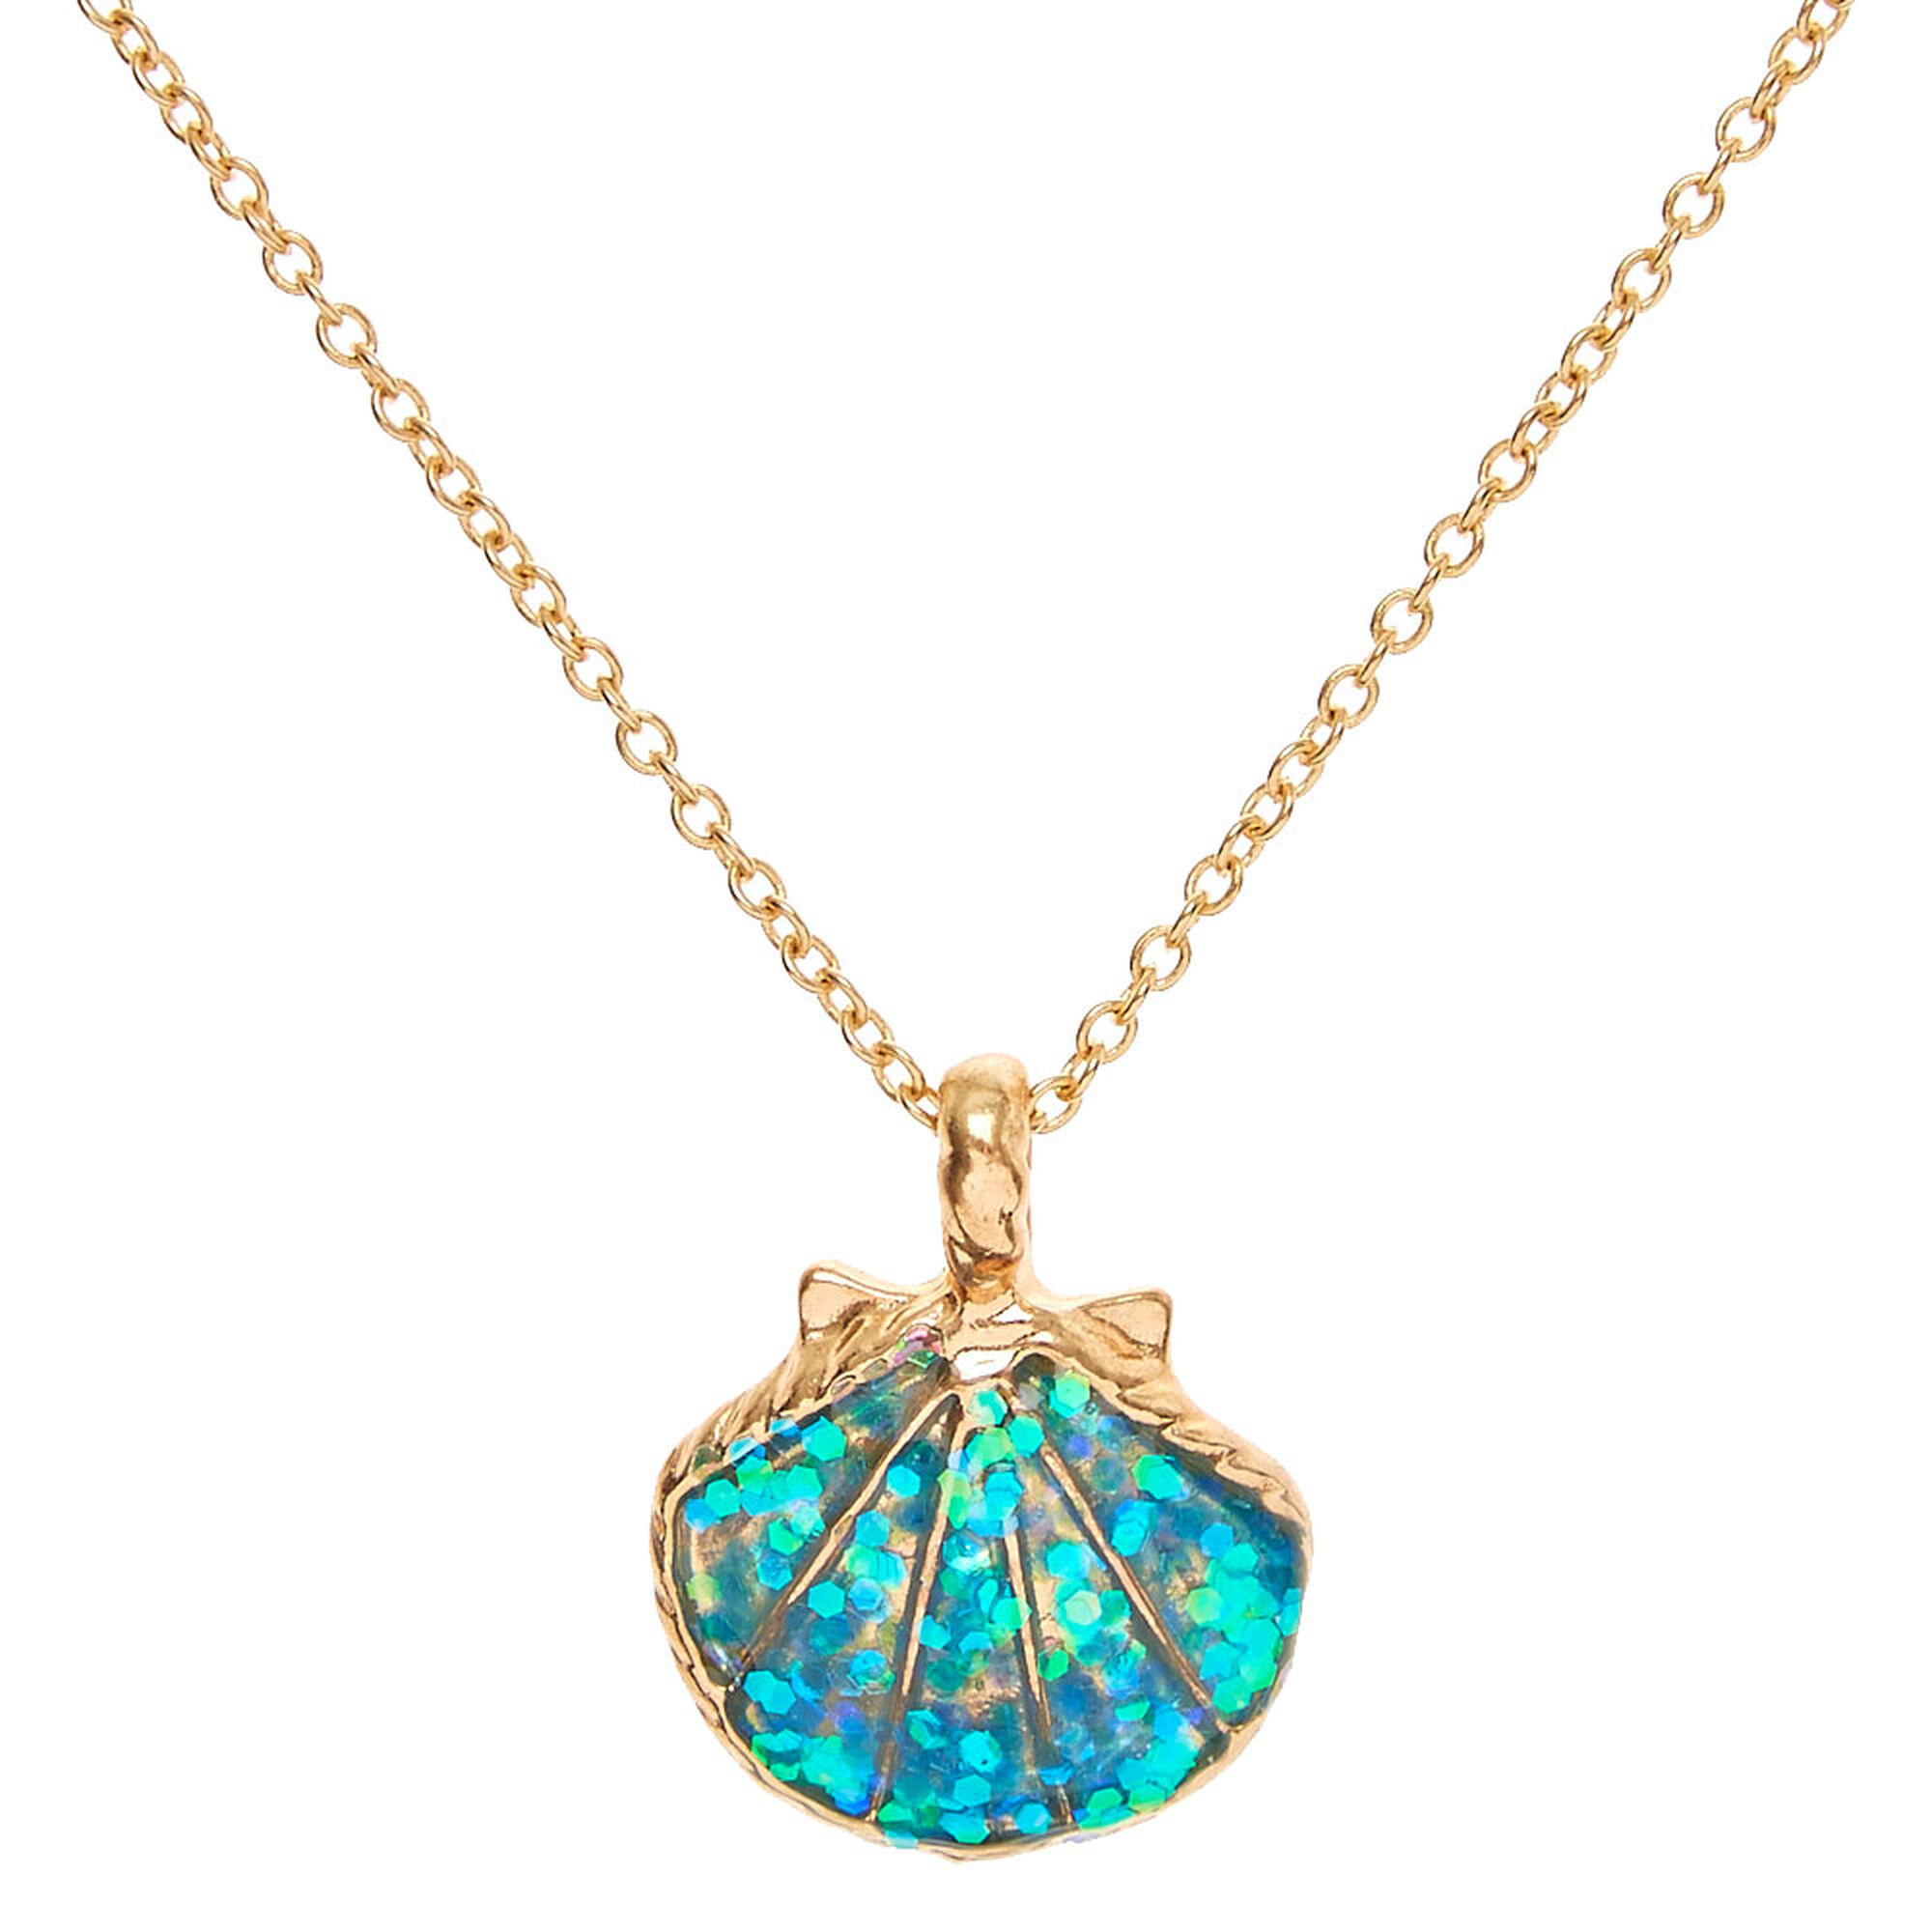 Mermaid glitter shell pendant necklace claires us mermaid glitter shell pendant necklace aloadofball Gallery